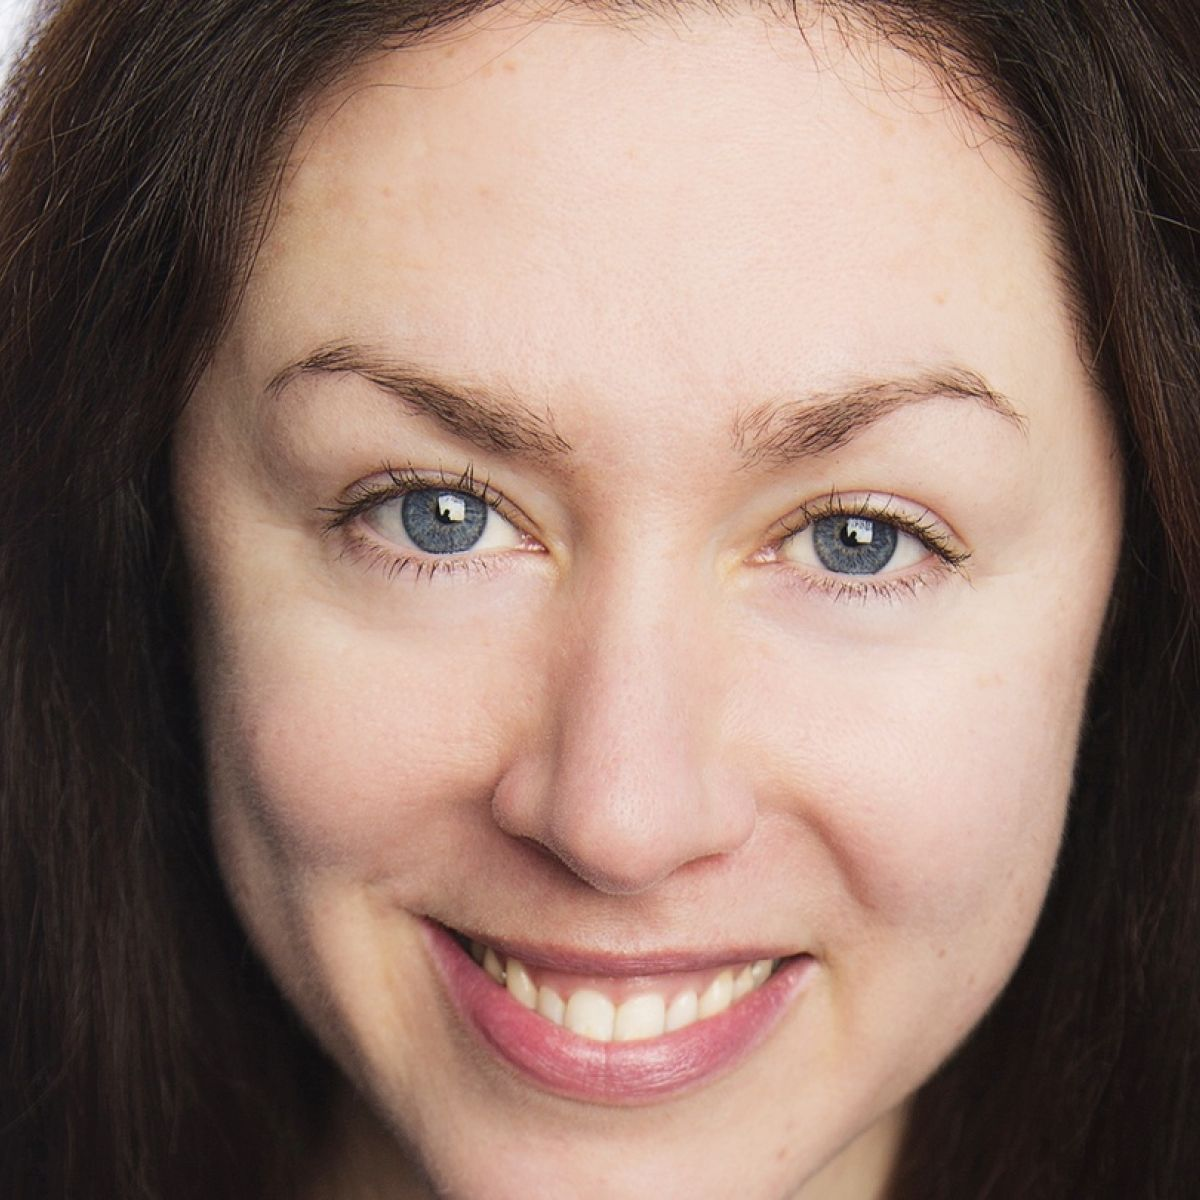 Eggshells by Caitriona Lally: 'priceless thoughts on words